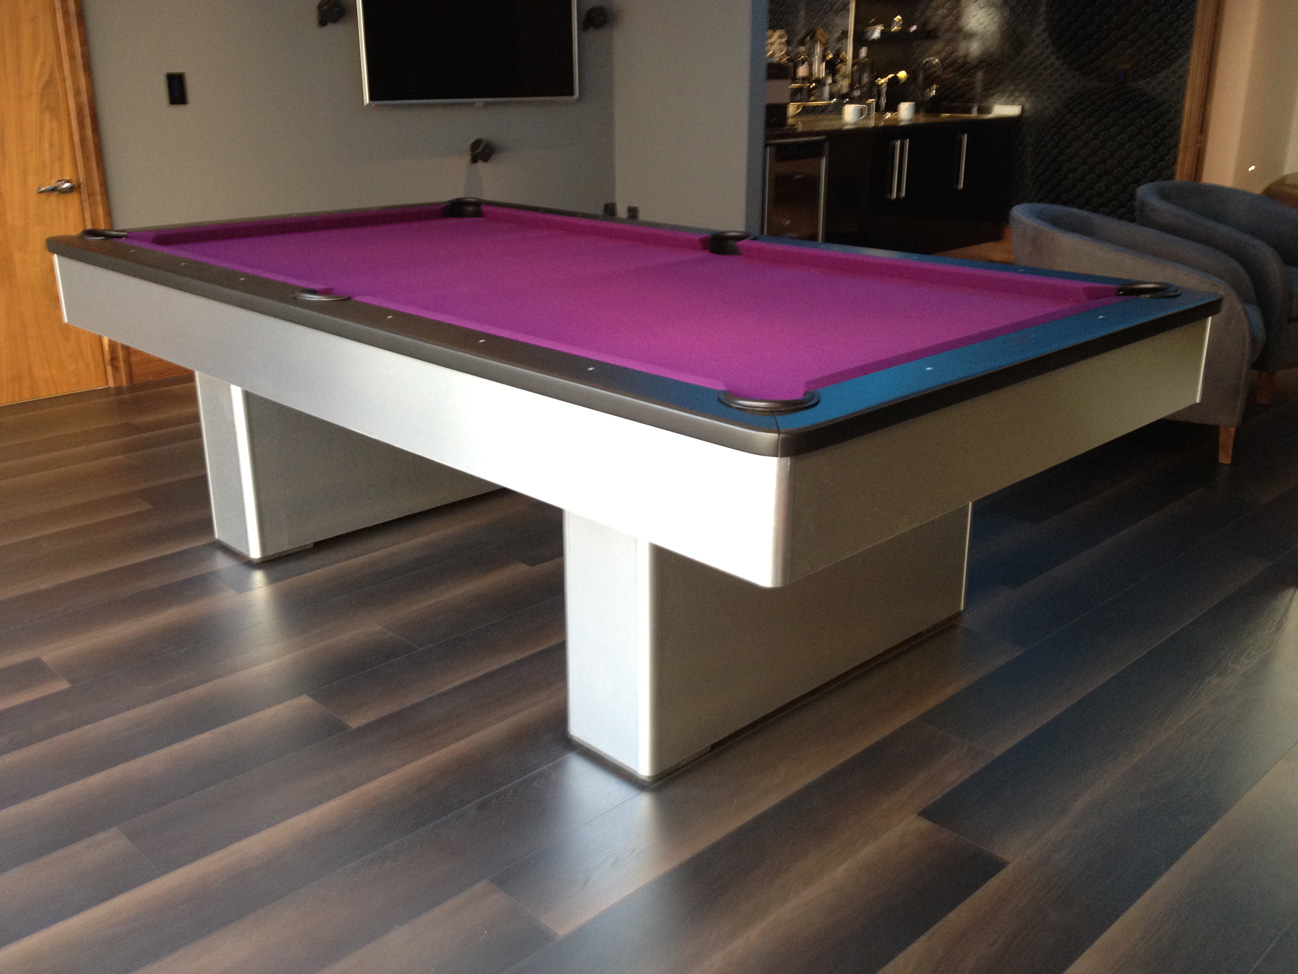 Olhausen Monarch Pool Table In Brushed Aluminium Purple Cloth - Aluminum pool table